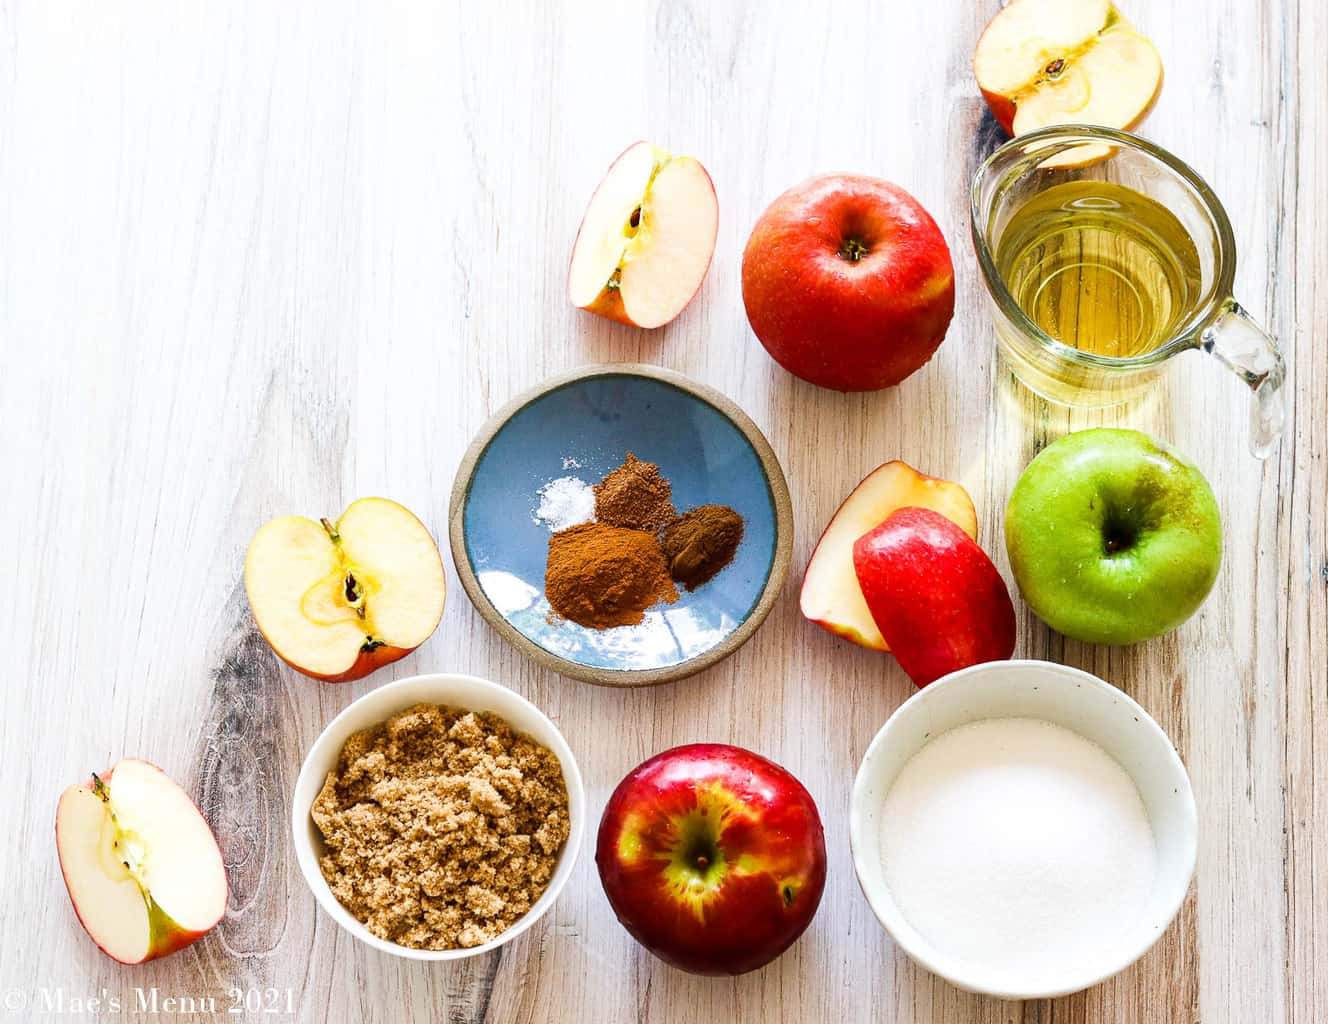 All the ingredients for instant pot apple butter: apples, sugar, brown sugar, cinnamon, nutmeg, cloves, and apple juice